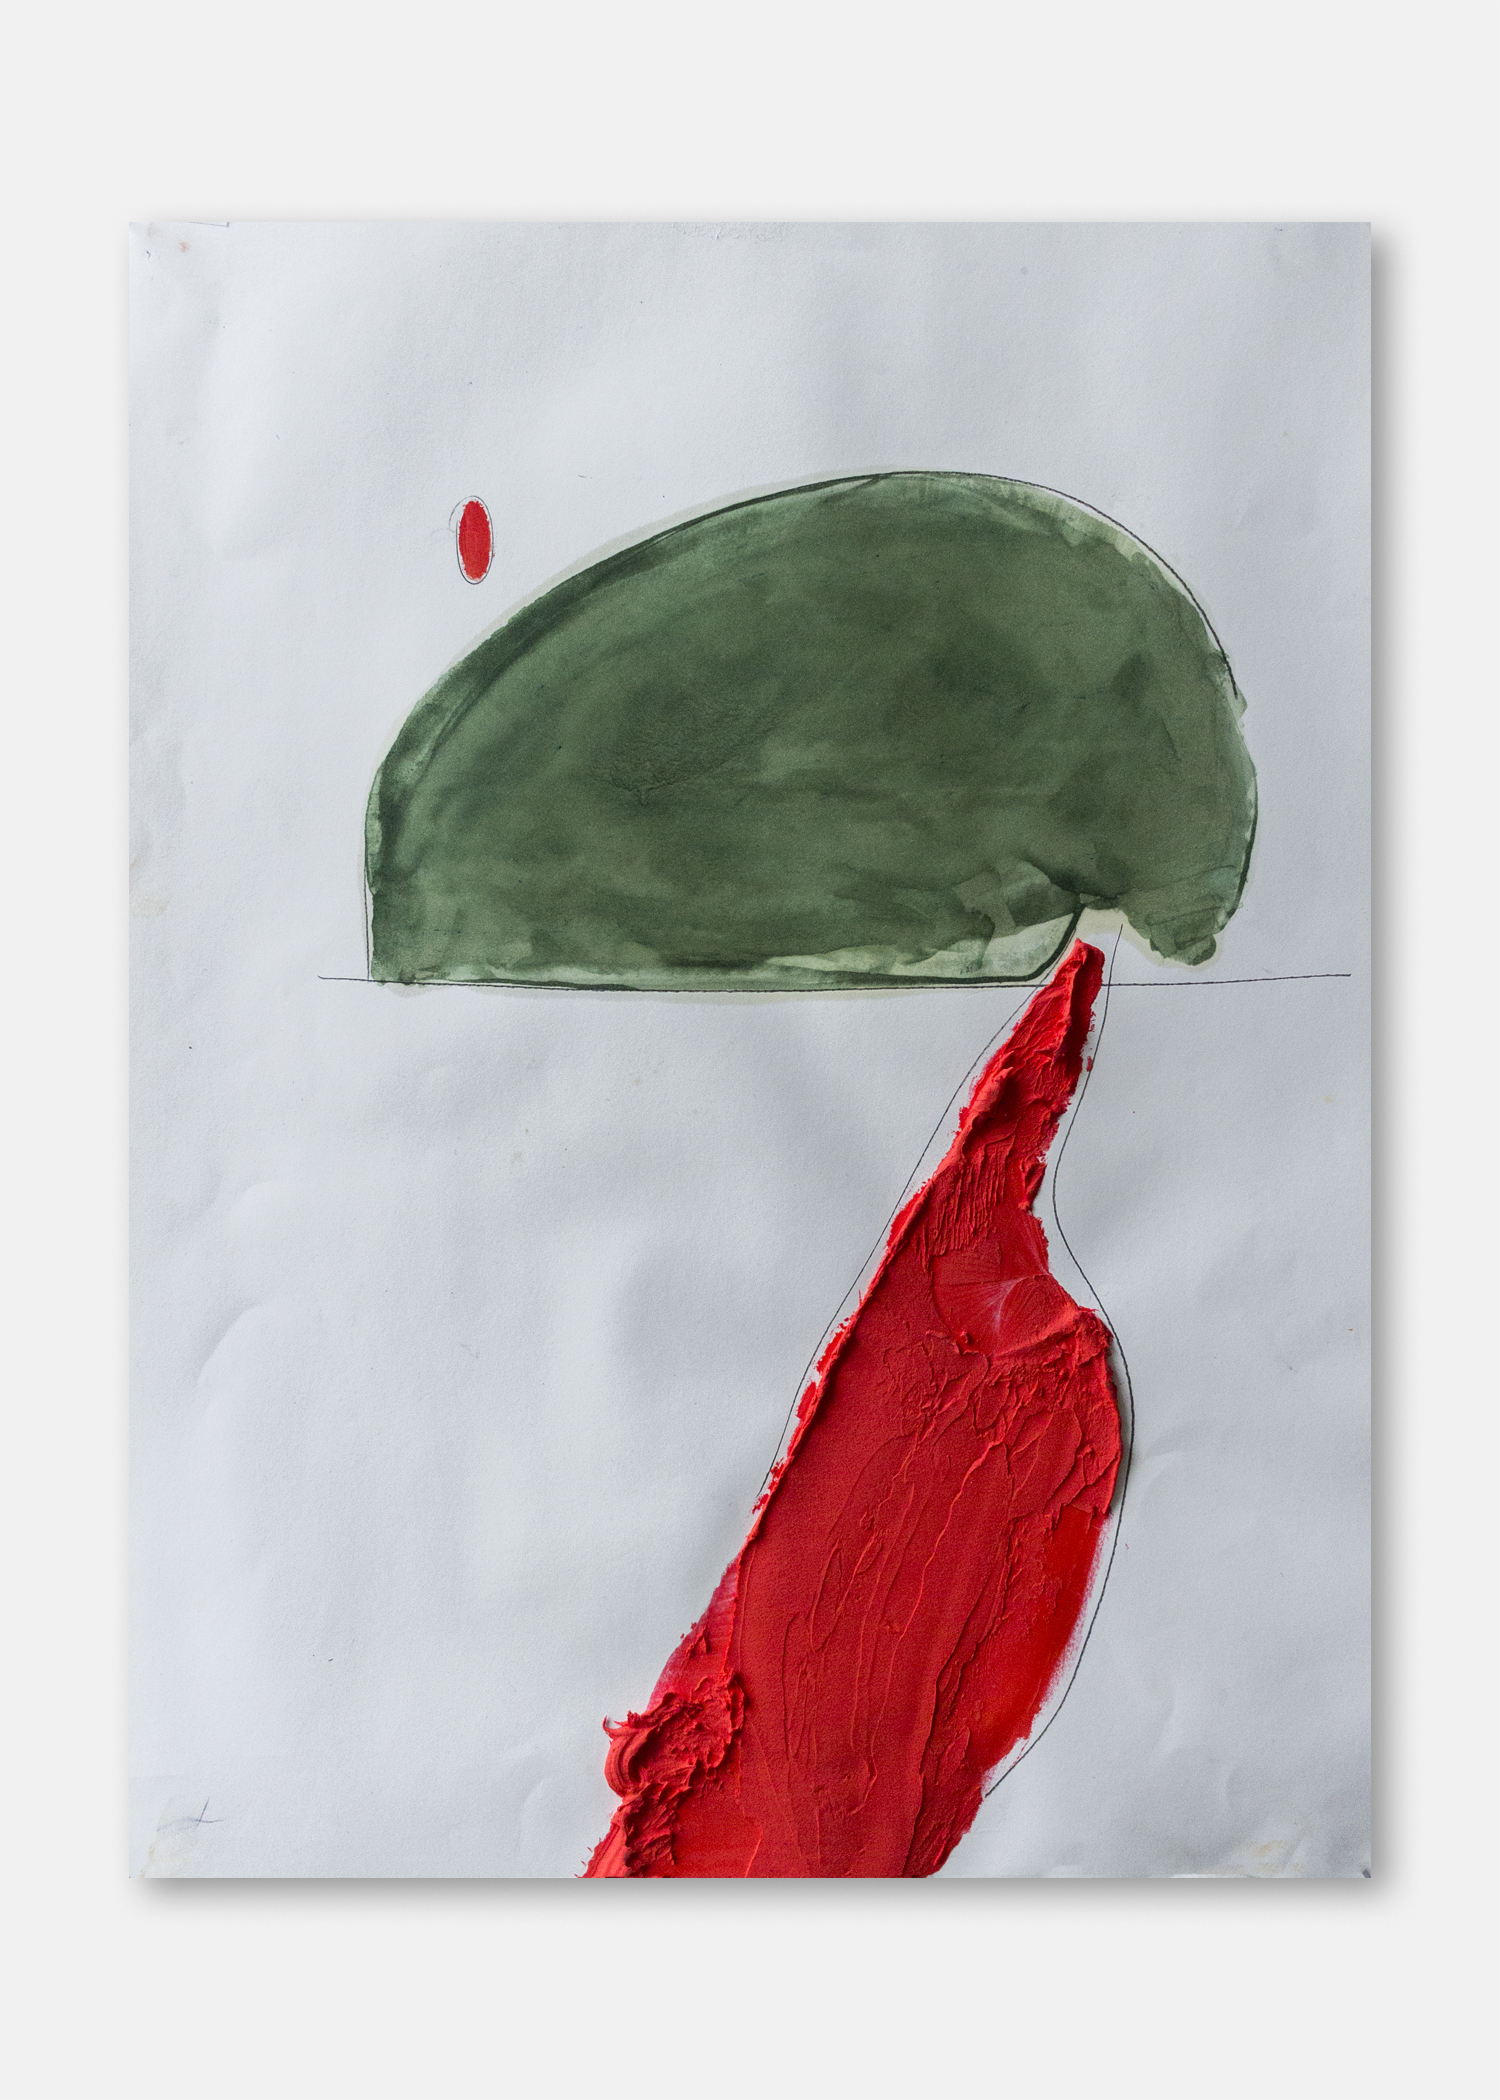 Untitled  Pigment and acrylic on paper  45.5 x 61 cm  24 x 18 in